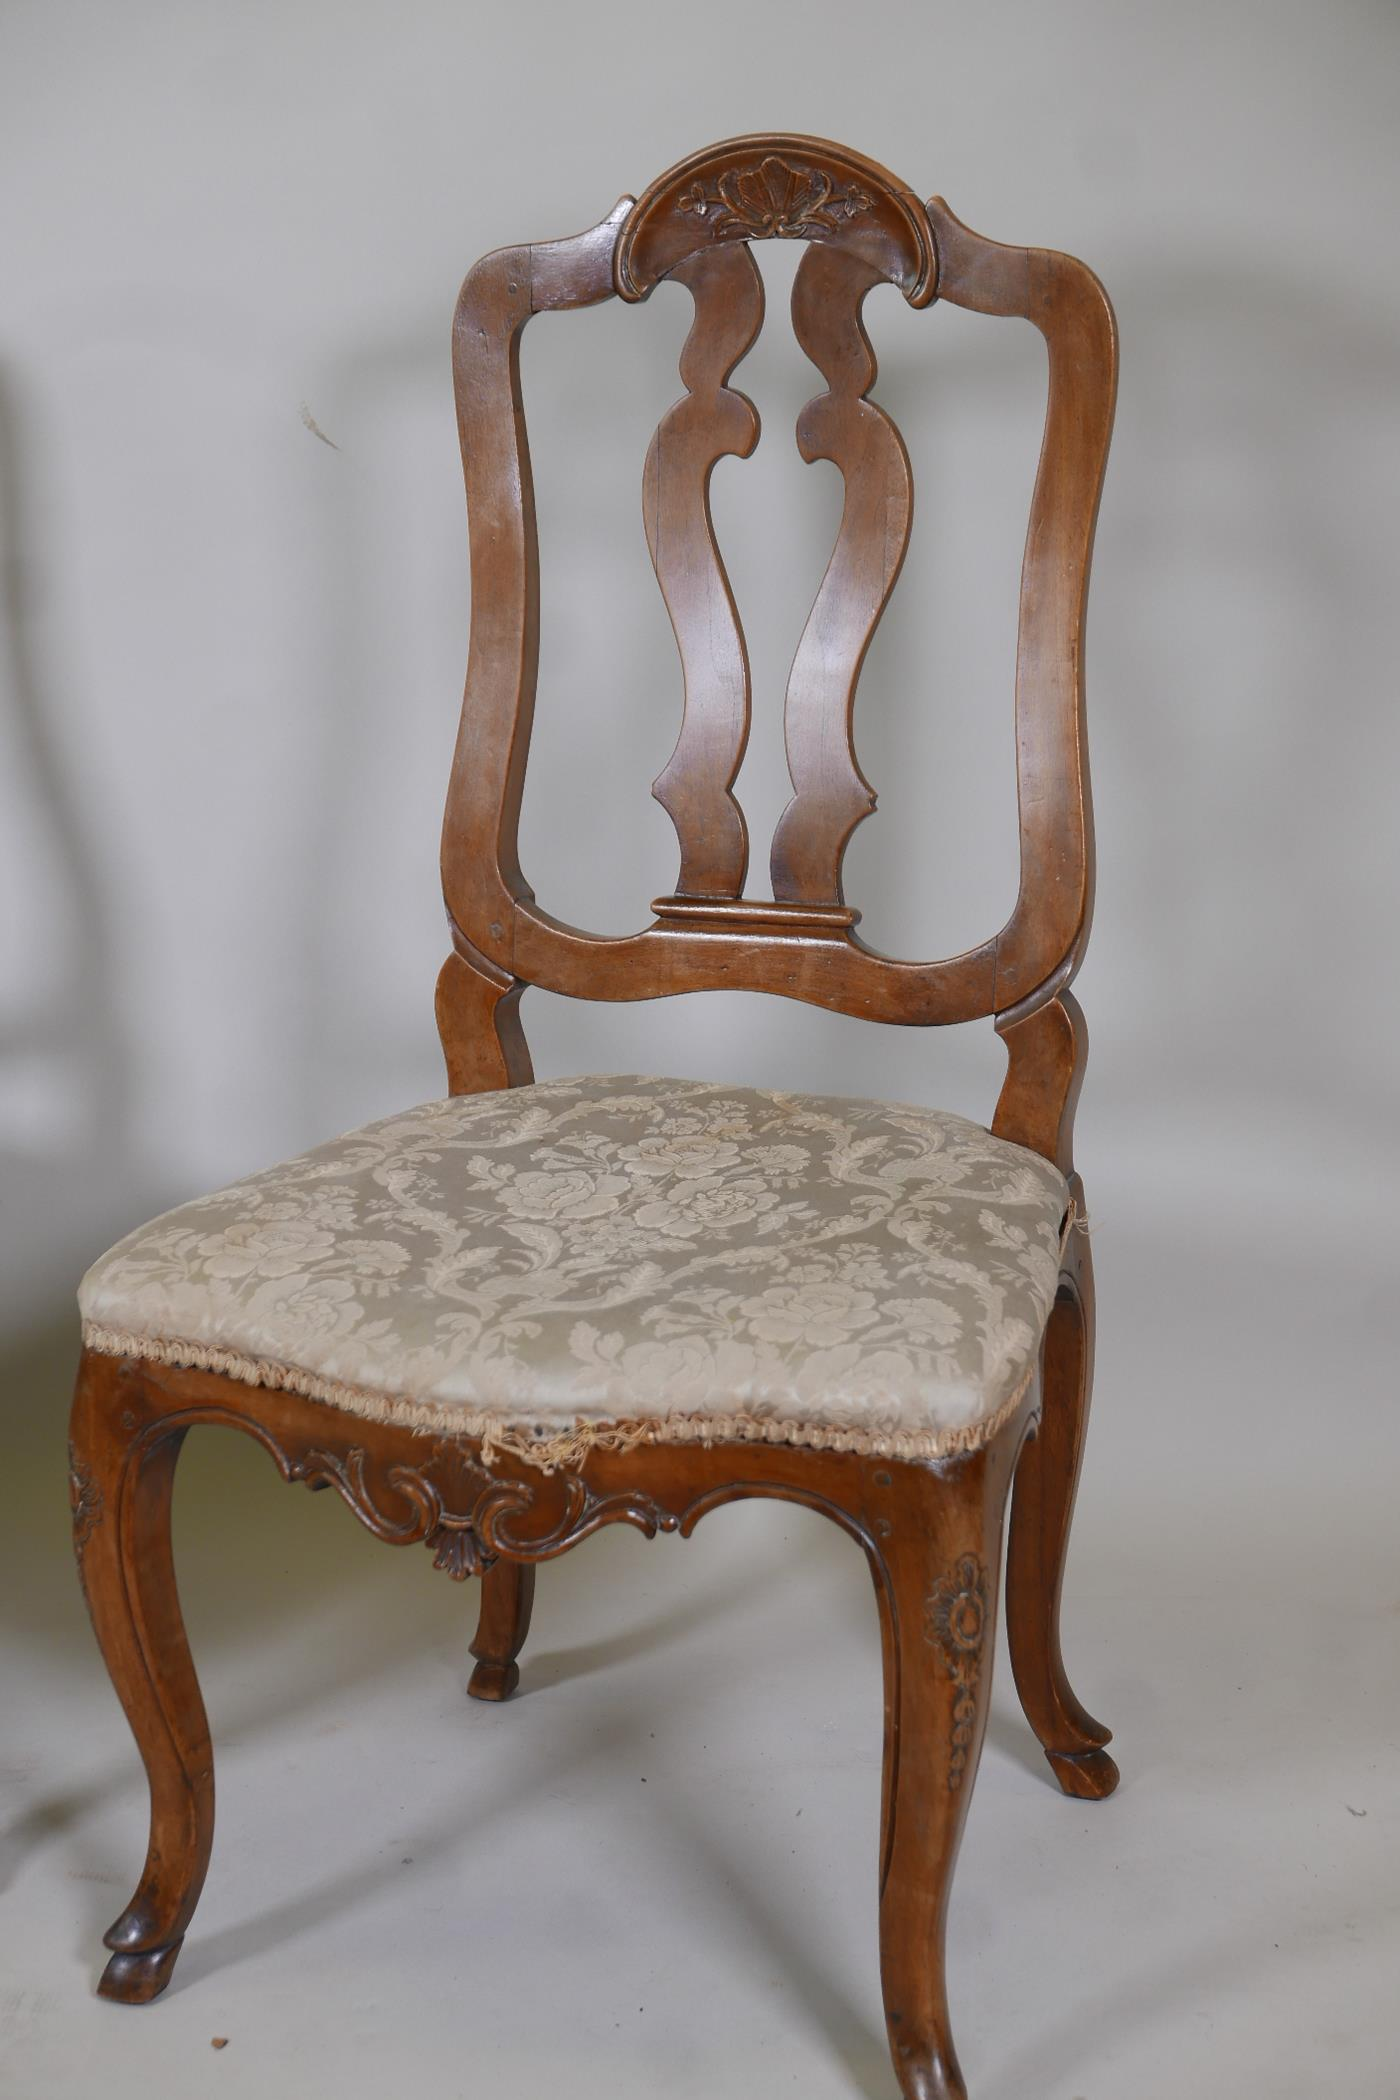 A pair of C18th French walnut pierced splat back side chairs with finely carved decoration, raised - Image 2 of 7